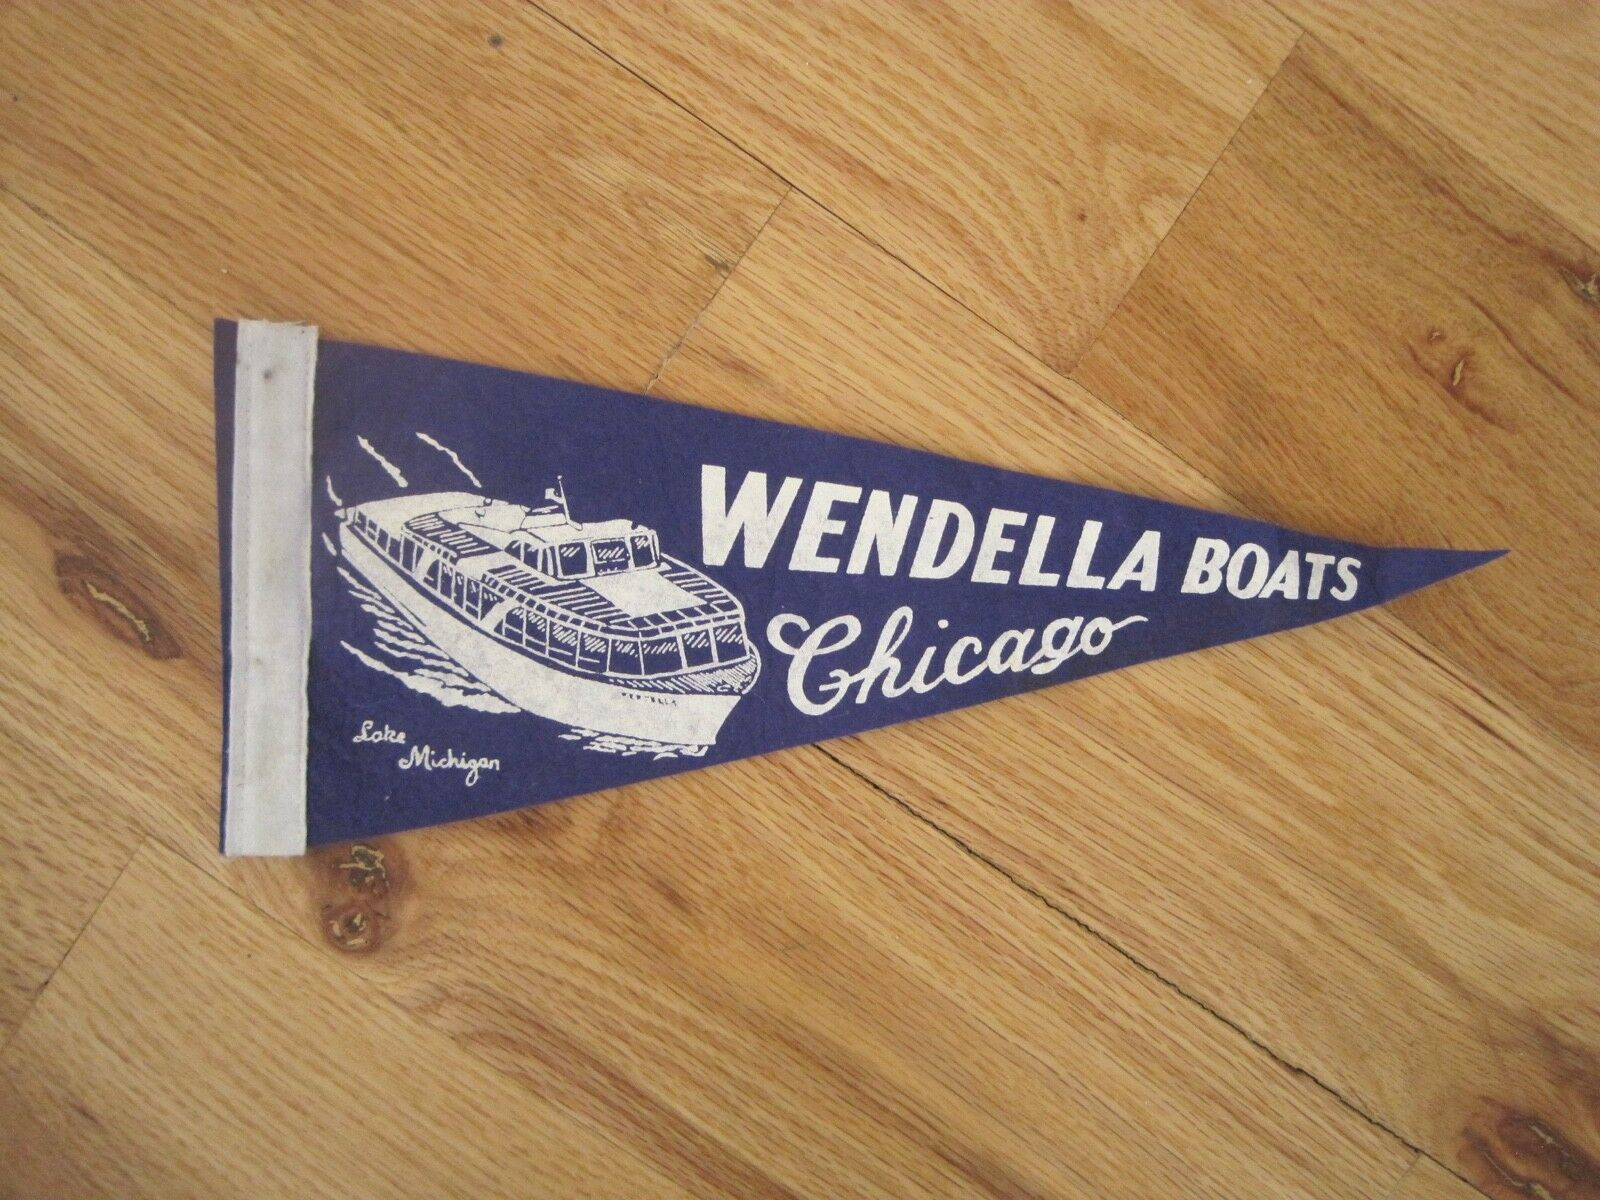 "Pennant Wendella Boats Chicago Lake Michigan 14 1/2"" x 3 1/2"""